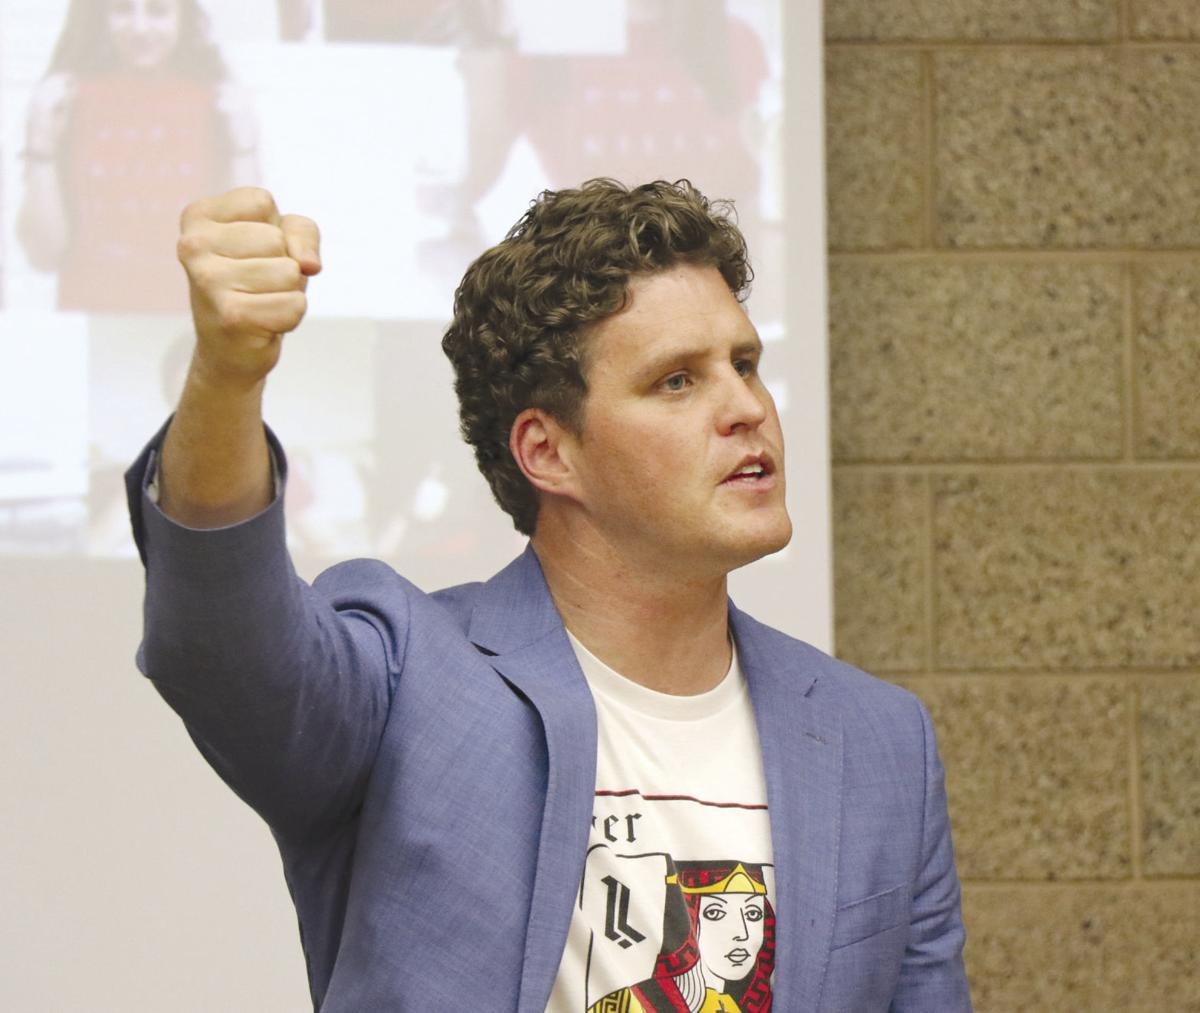 'Fight for real love': Anti-pornography crusader brings message to local youth, parents